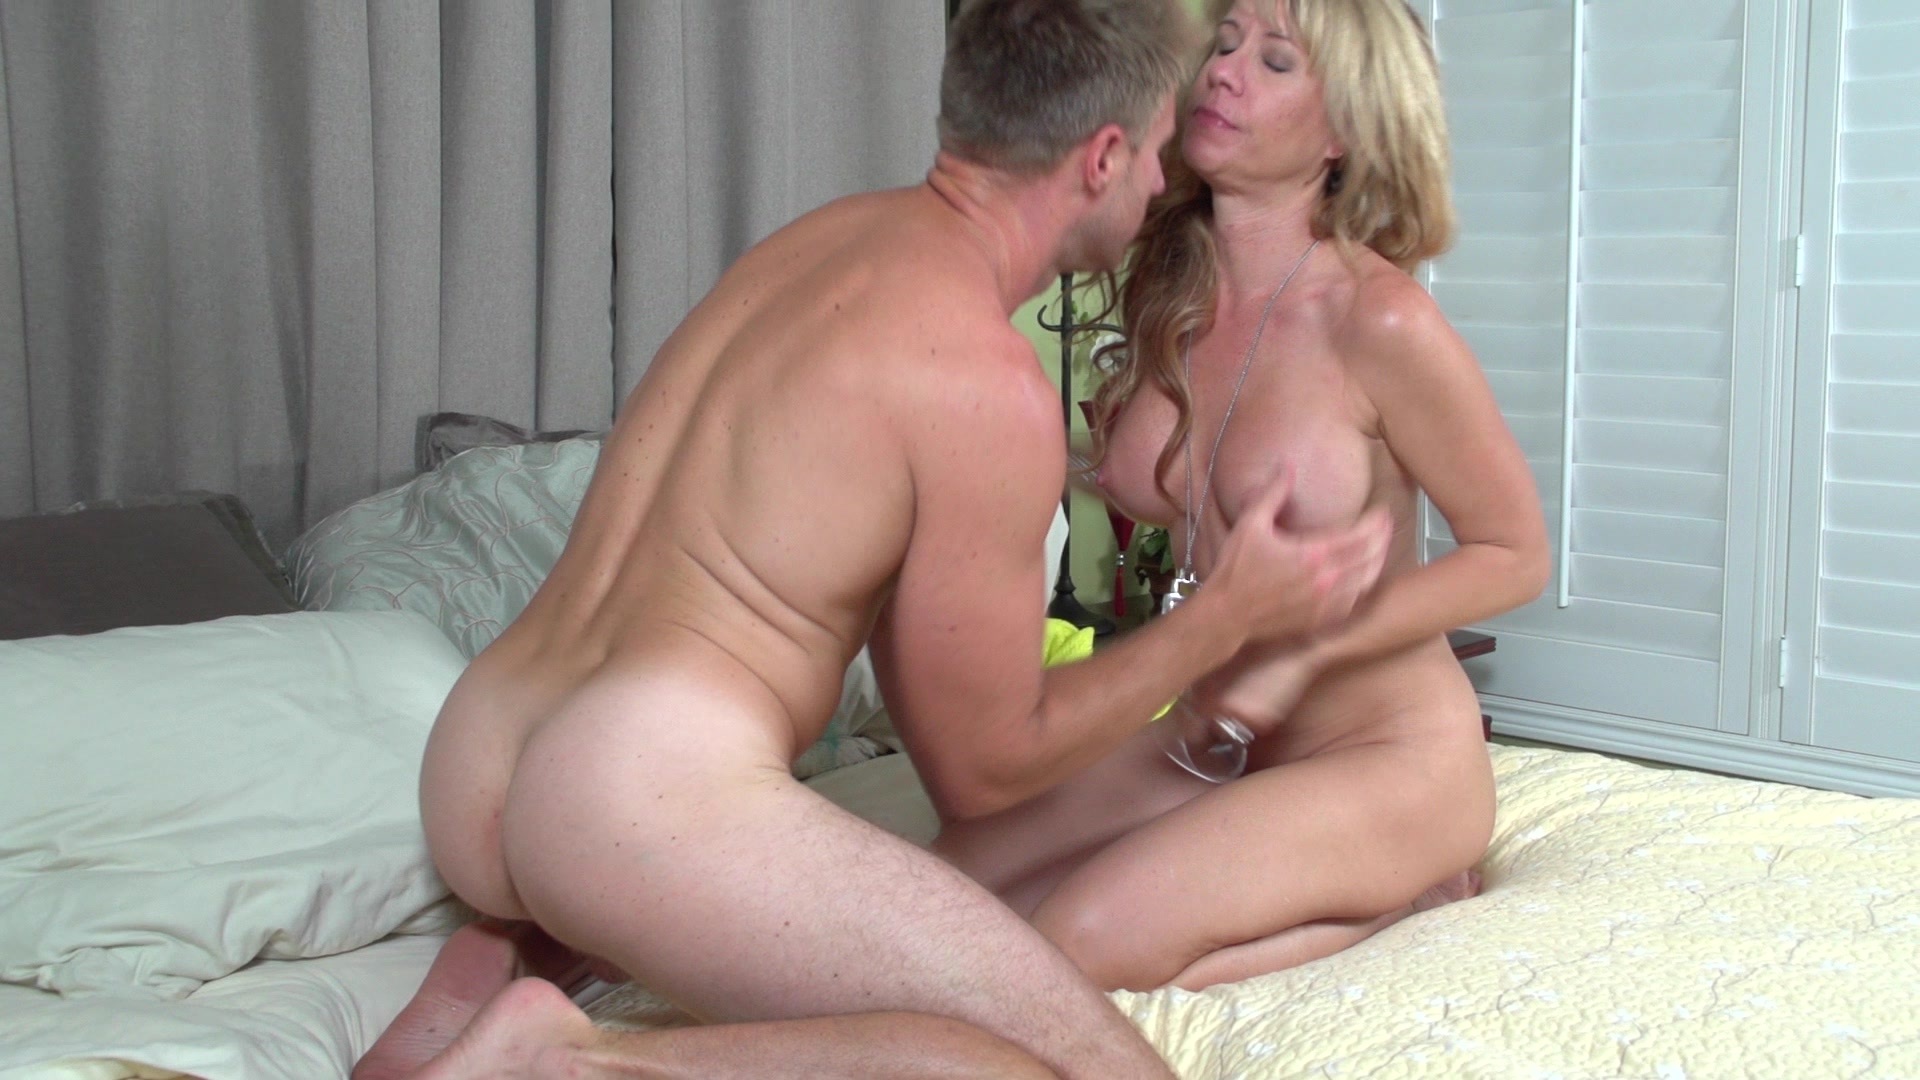 ireland-mom-and-son-sex-videos-young-amateur-home-made-videos